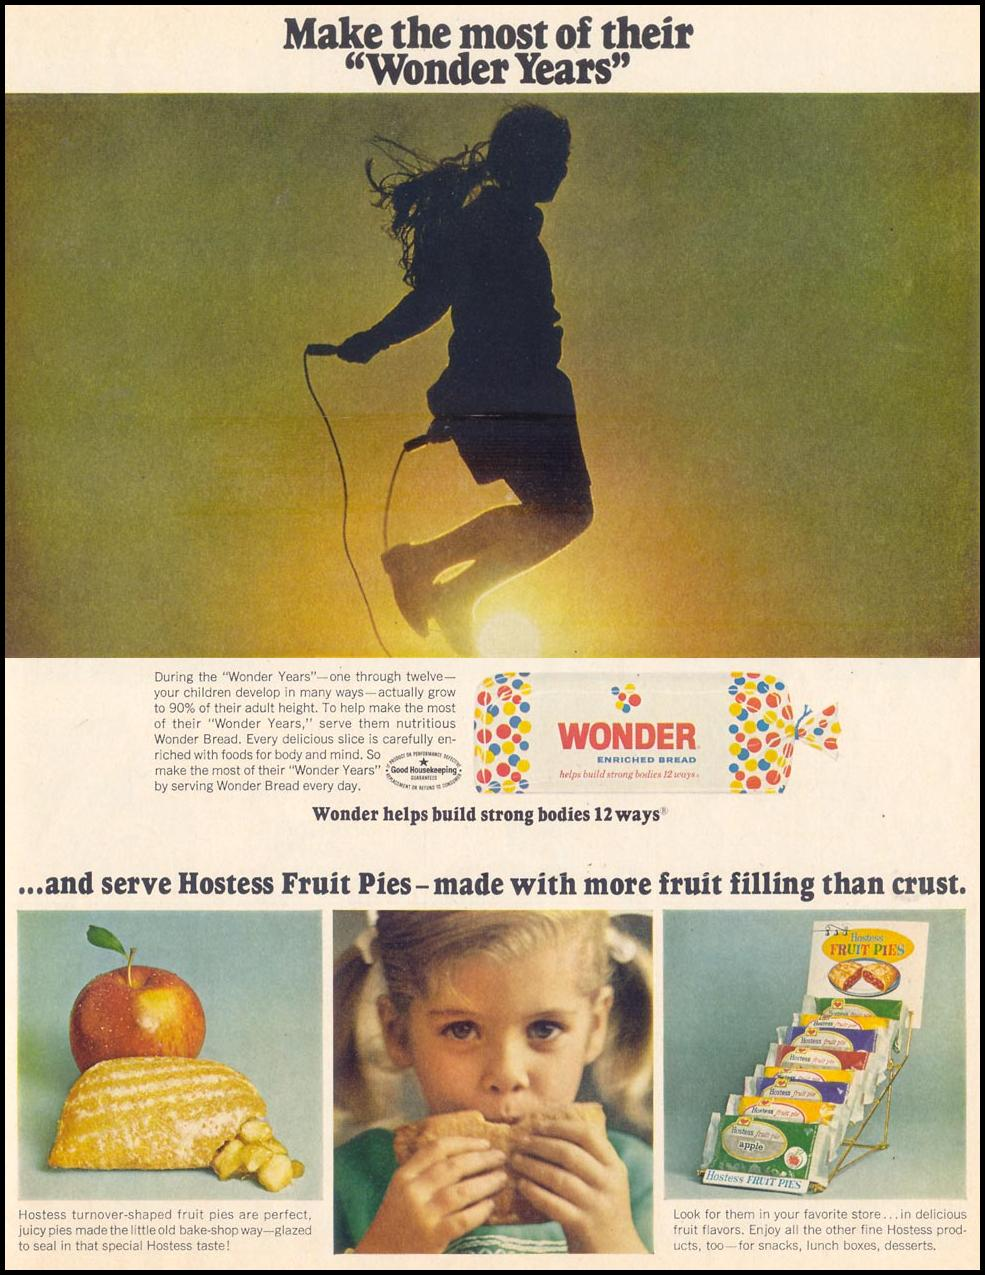 WONDER ENRICHED BREAD LIFE 05/19/1967